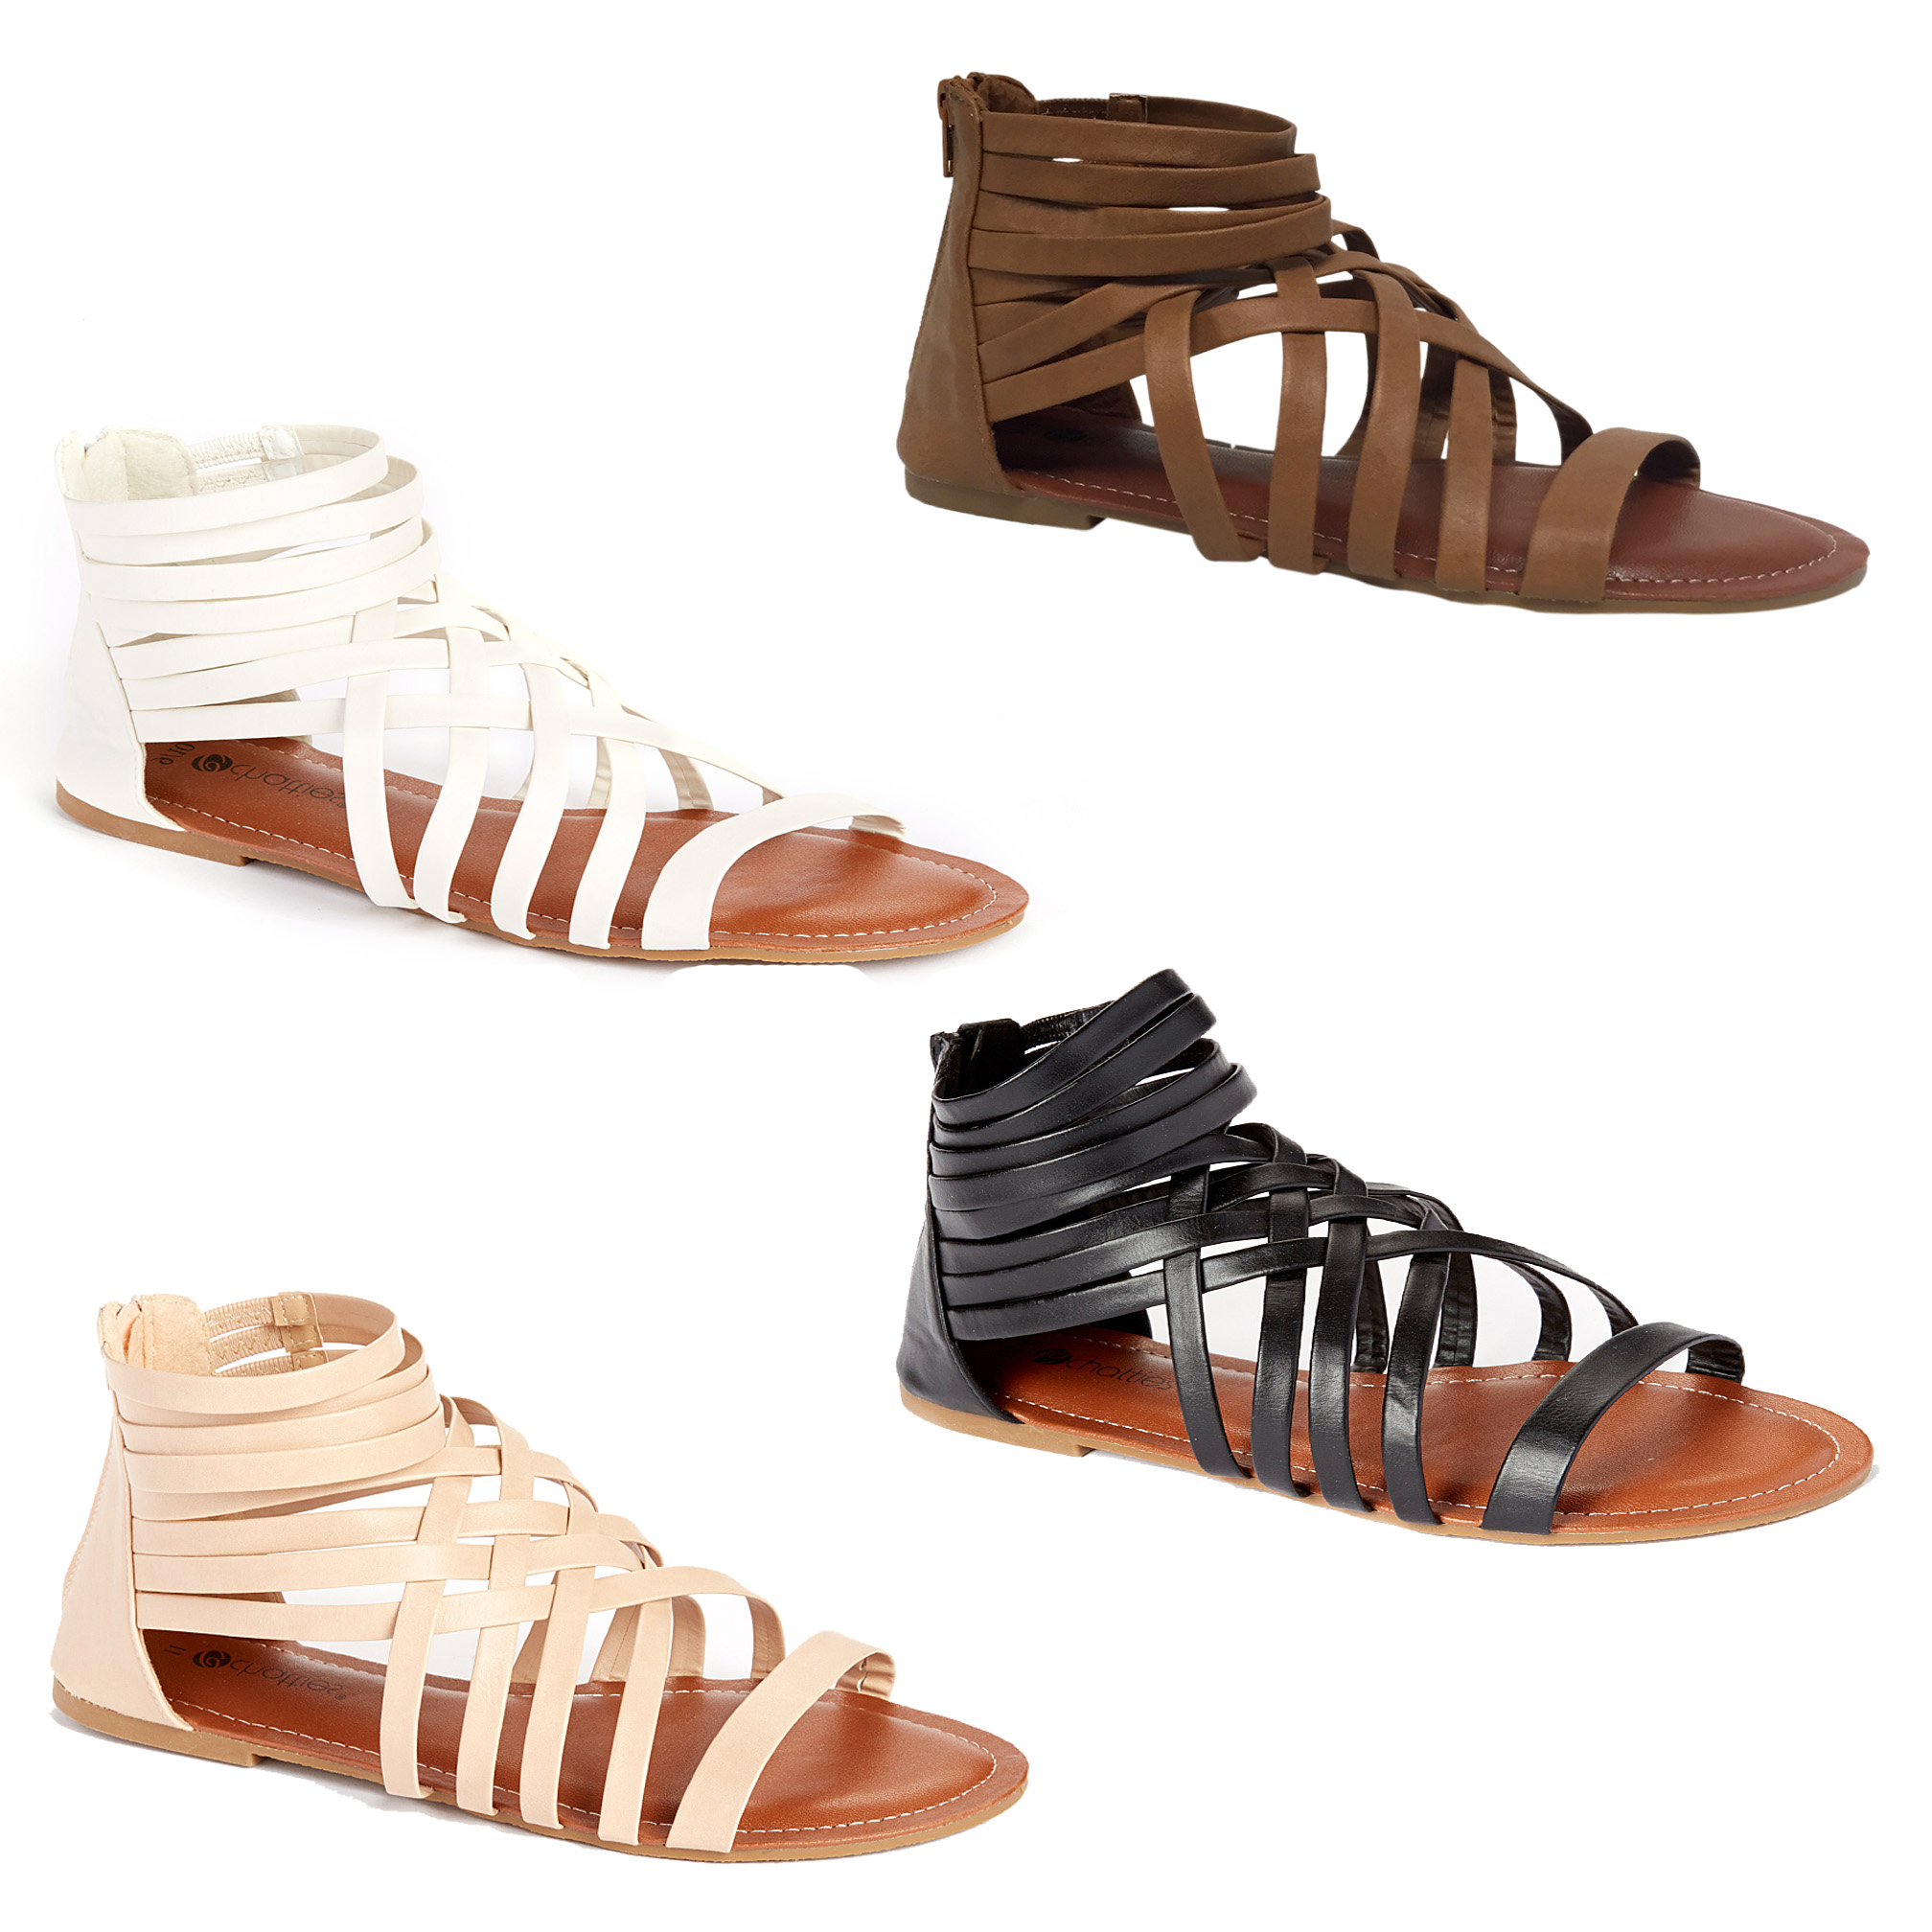 Women's Woven Gladiator Sandals with Comfort Soles and Zip Back - Assorted Colors